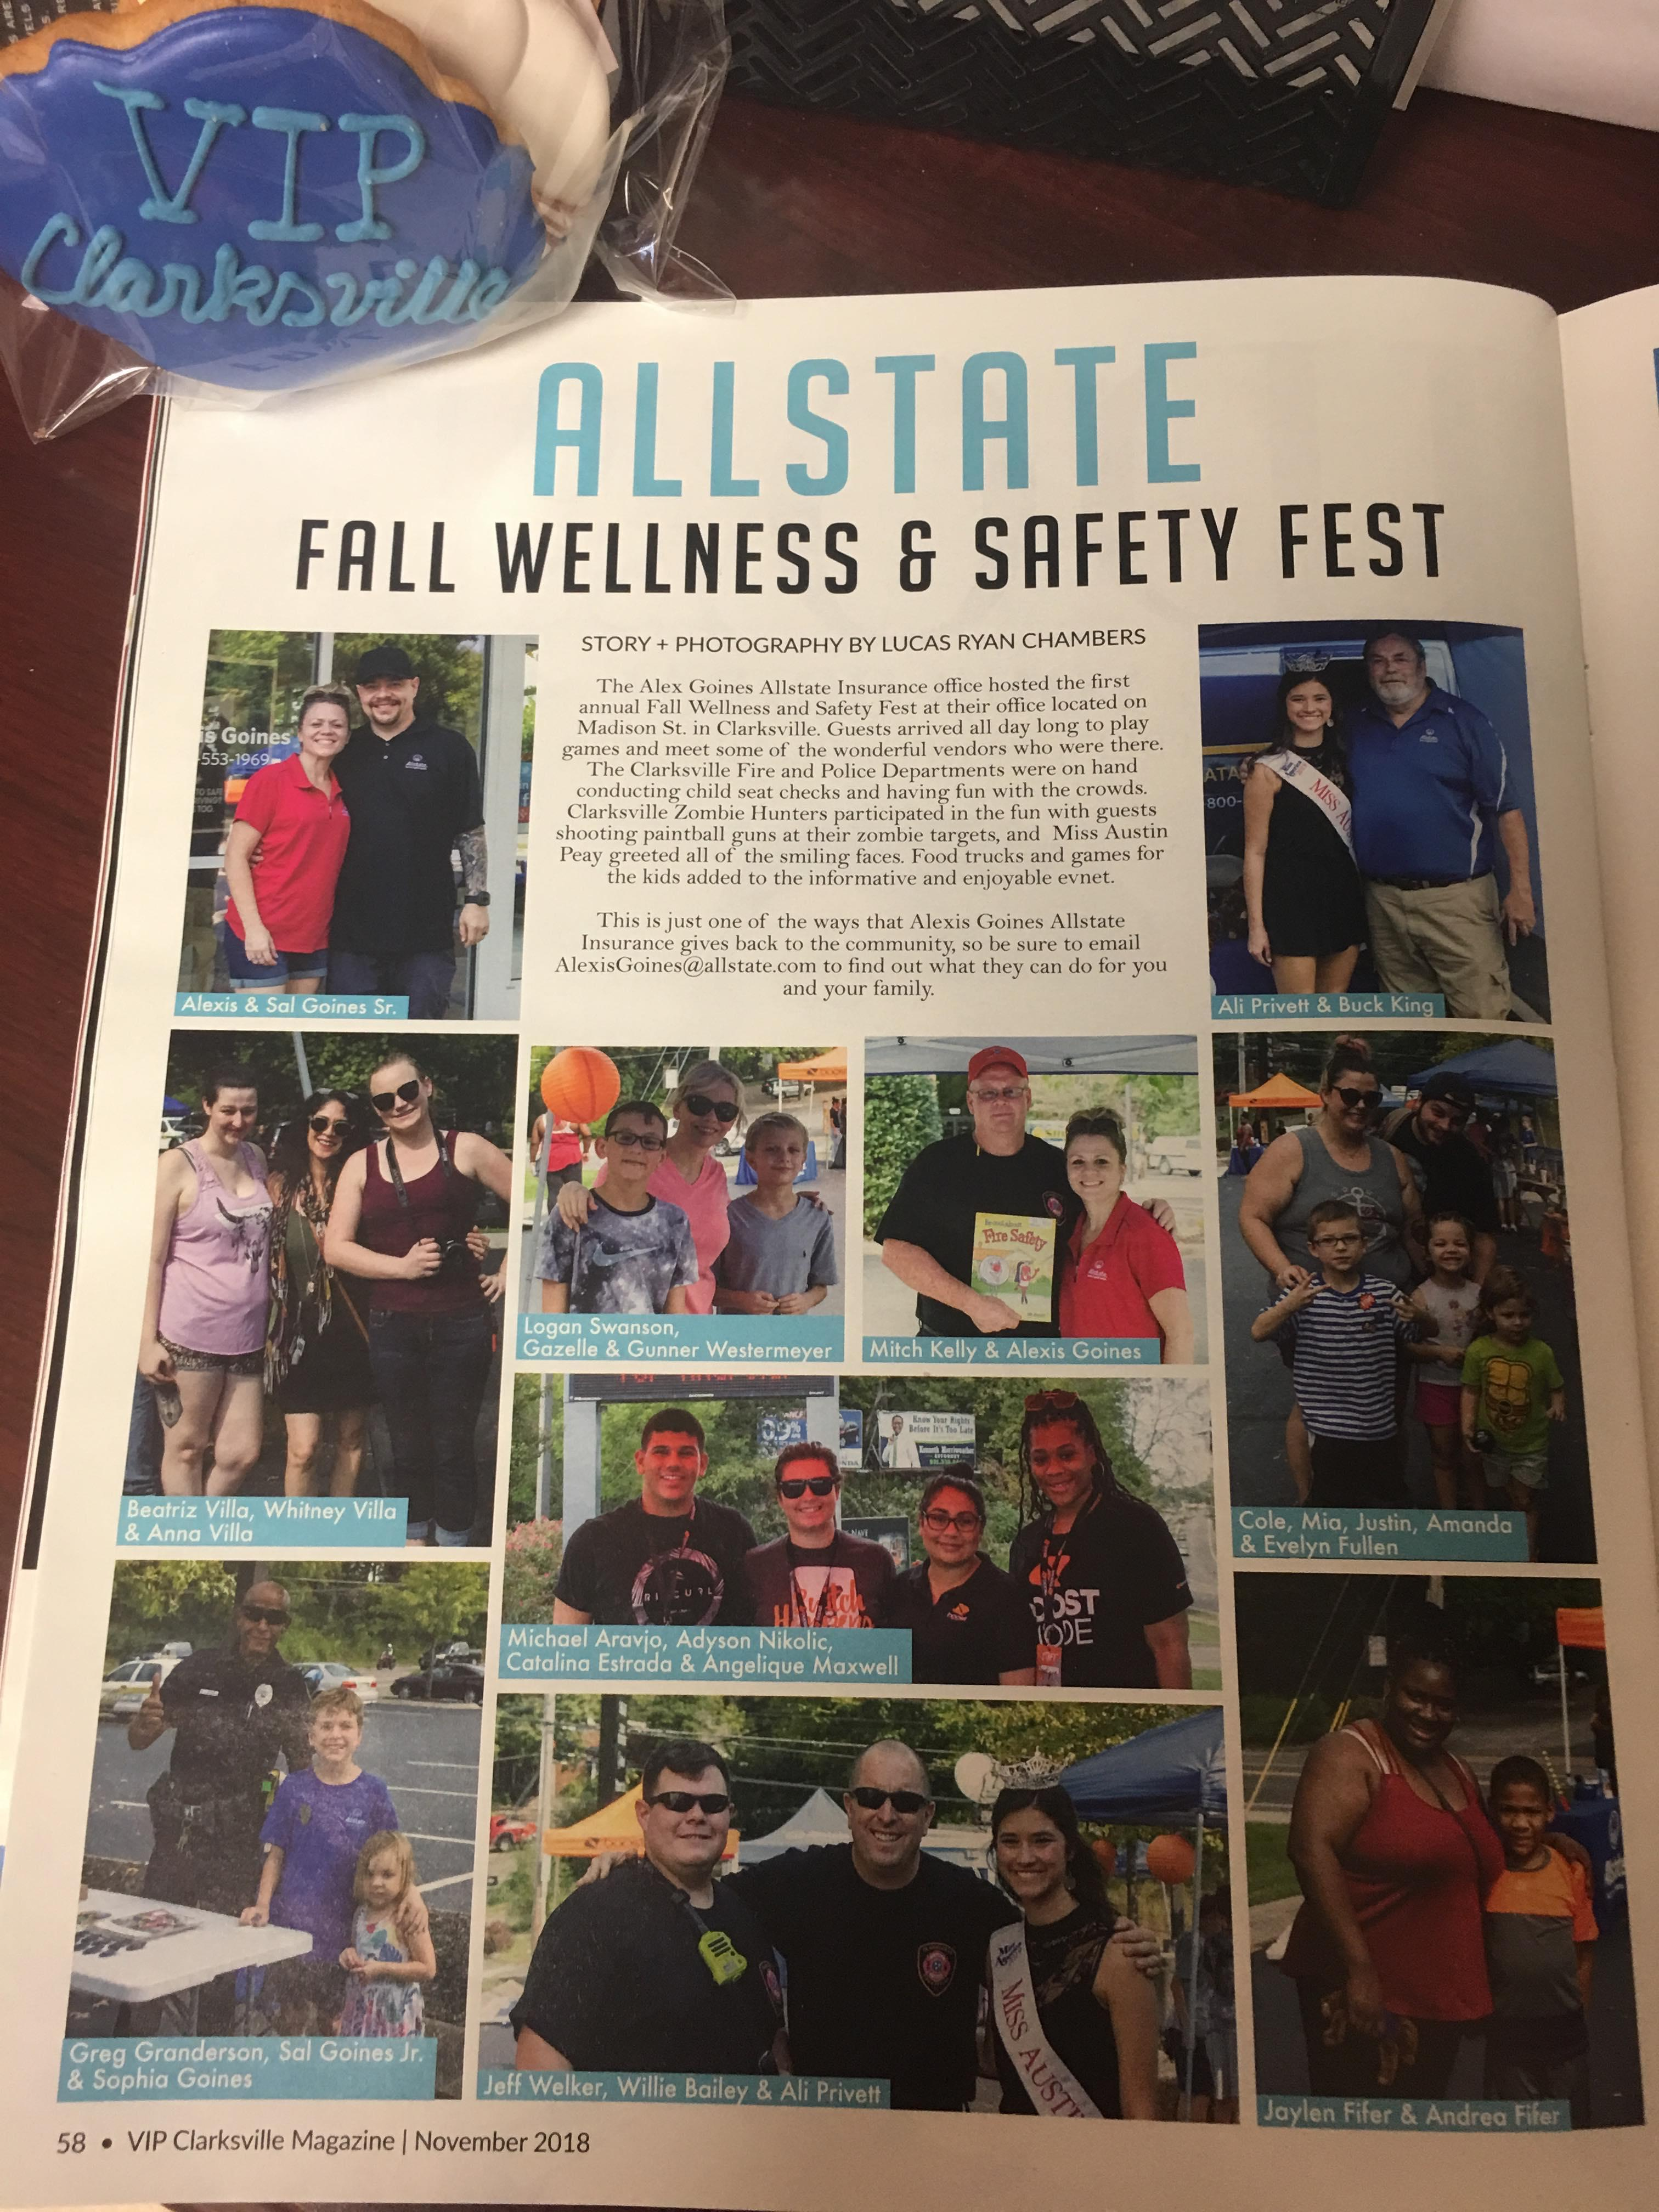 Alexis Goines: Allstate Insurance image 29